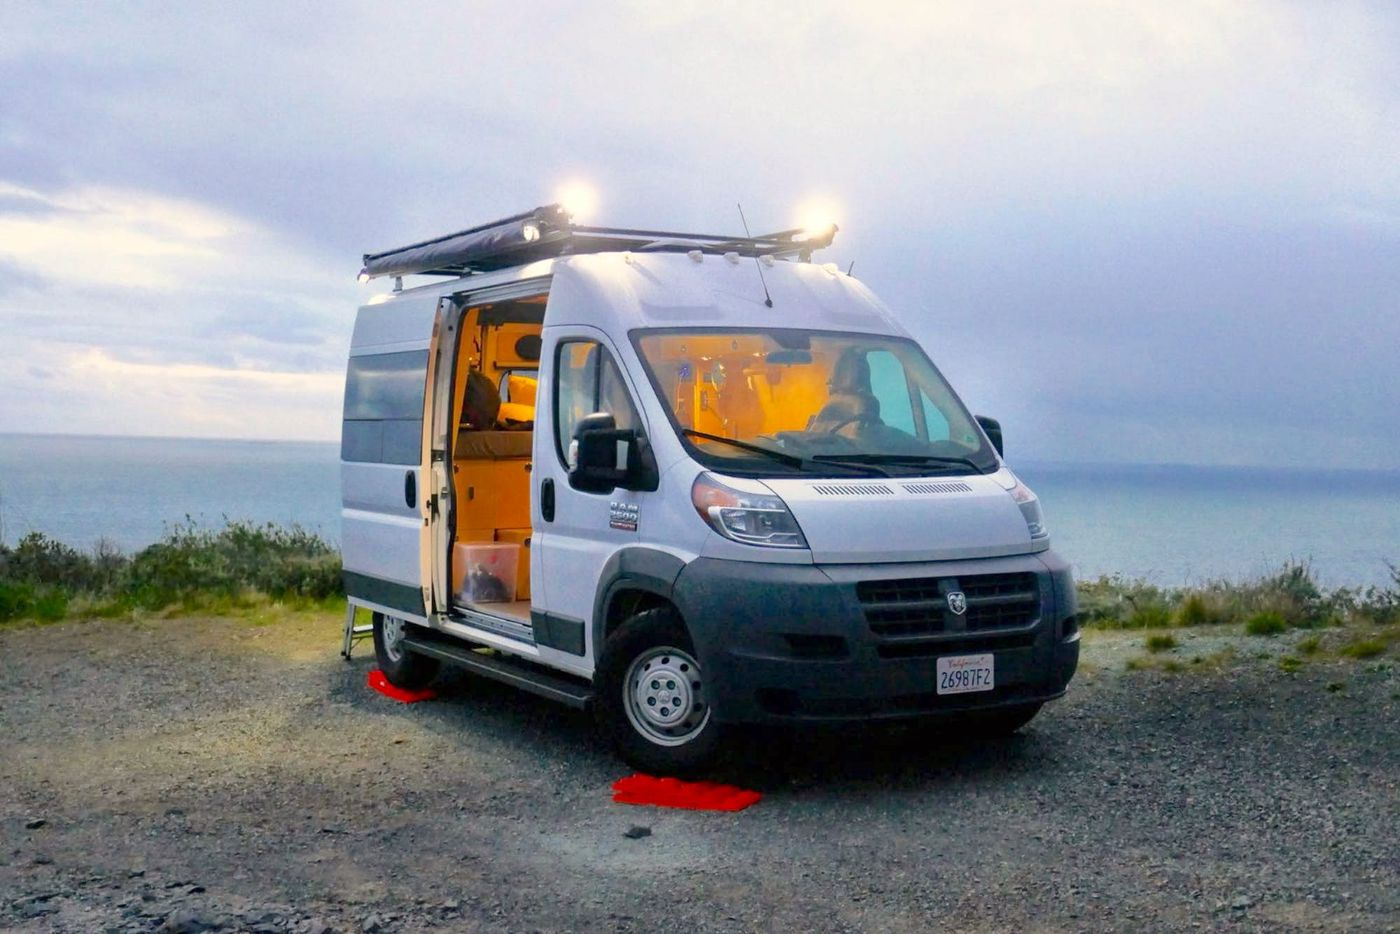 The 9 best camper vans of 2018 - Curbed